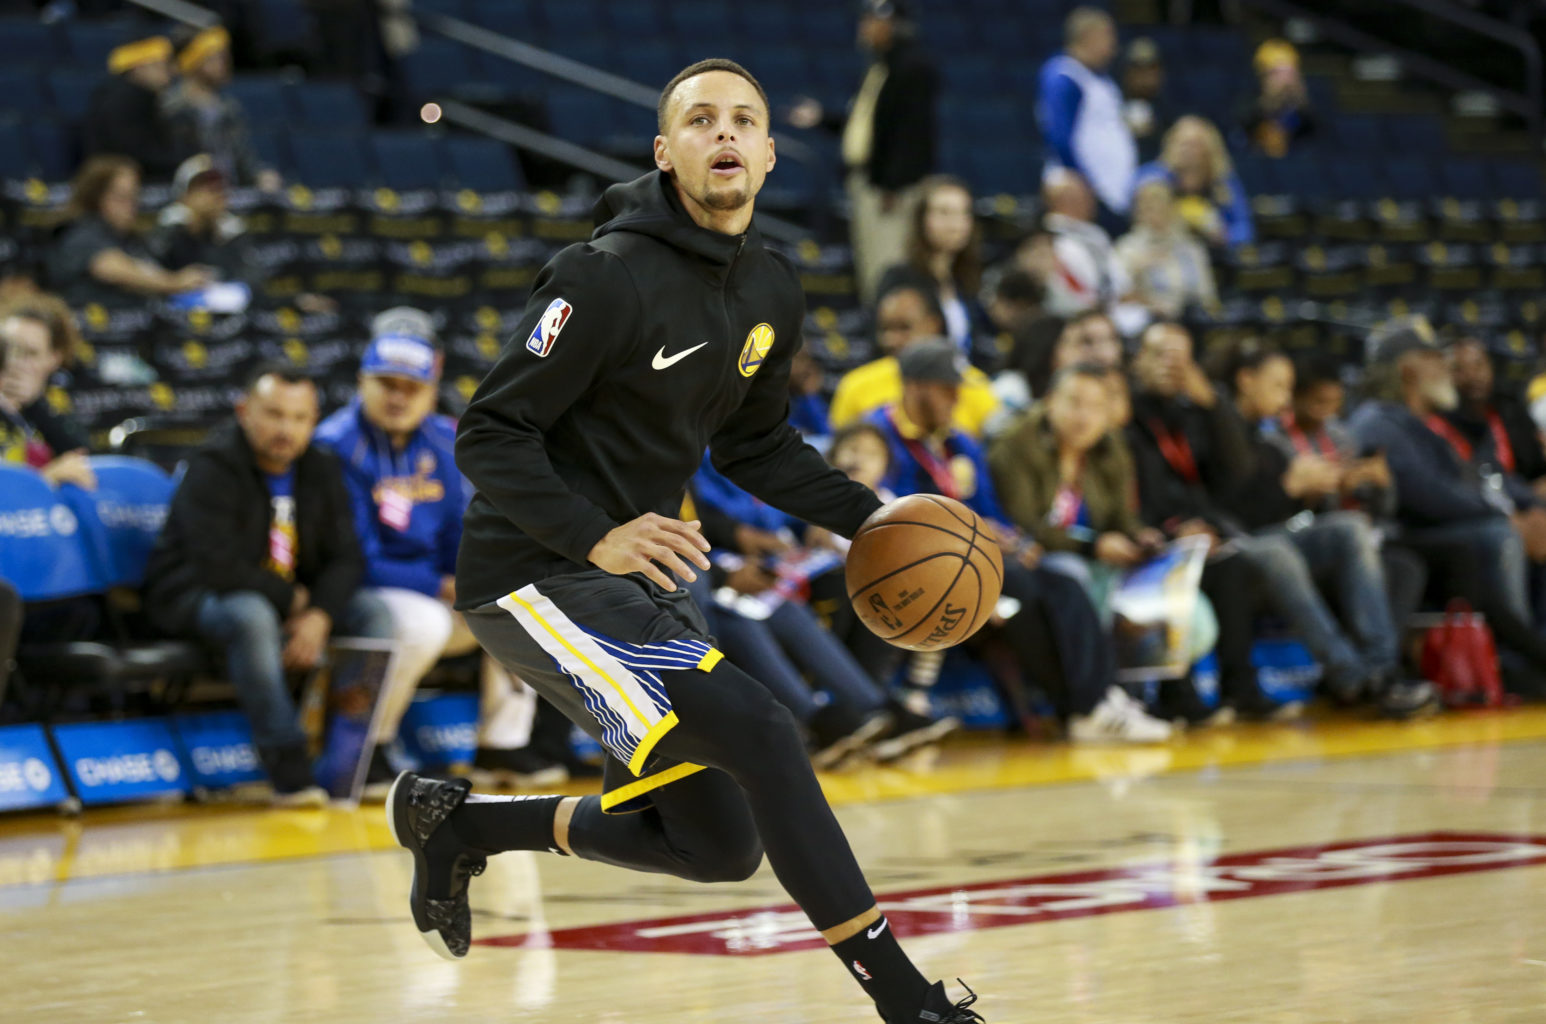 Stephen Curry (30) of the Golden State Warriors takes some practice shots despite being injured with a groin strain and having been involved in a morning car accident on Highway 24 on November 23, 2018 at Oracle Arena in Oakland, California. (Chris Victorio - Special to S.F. Examiner)